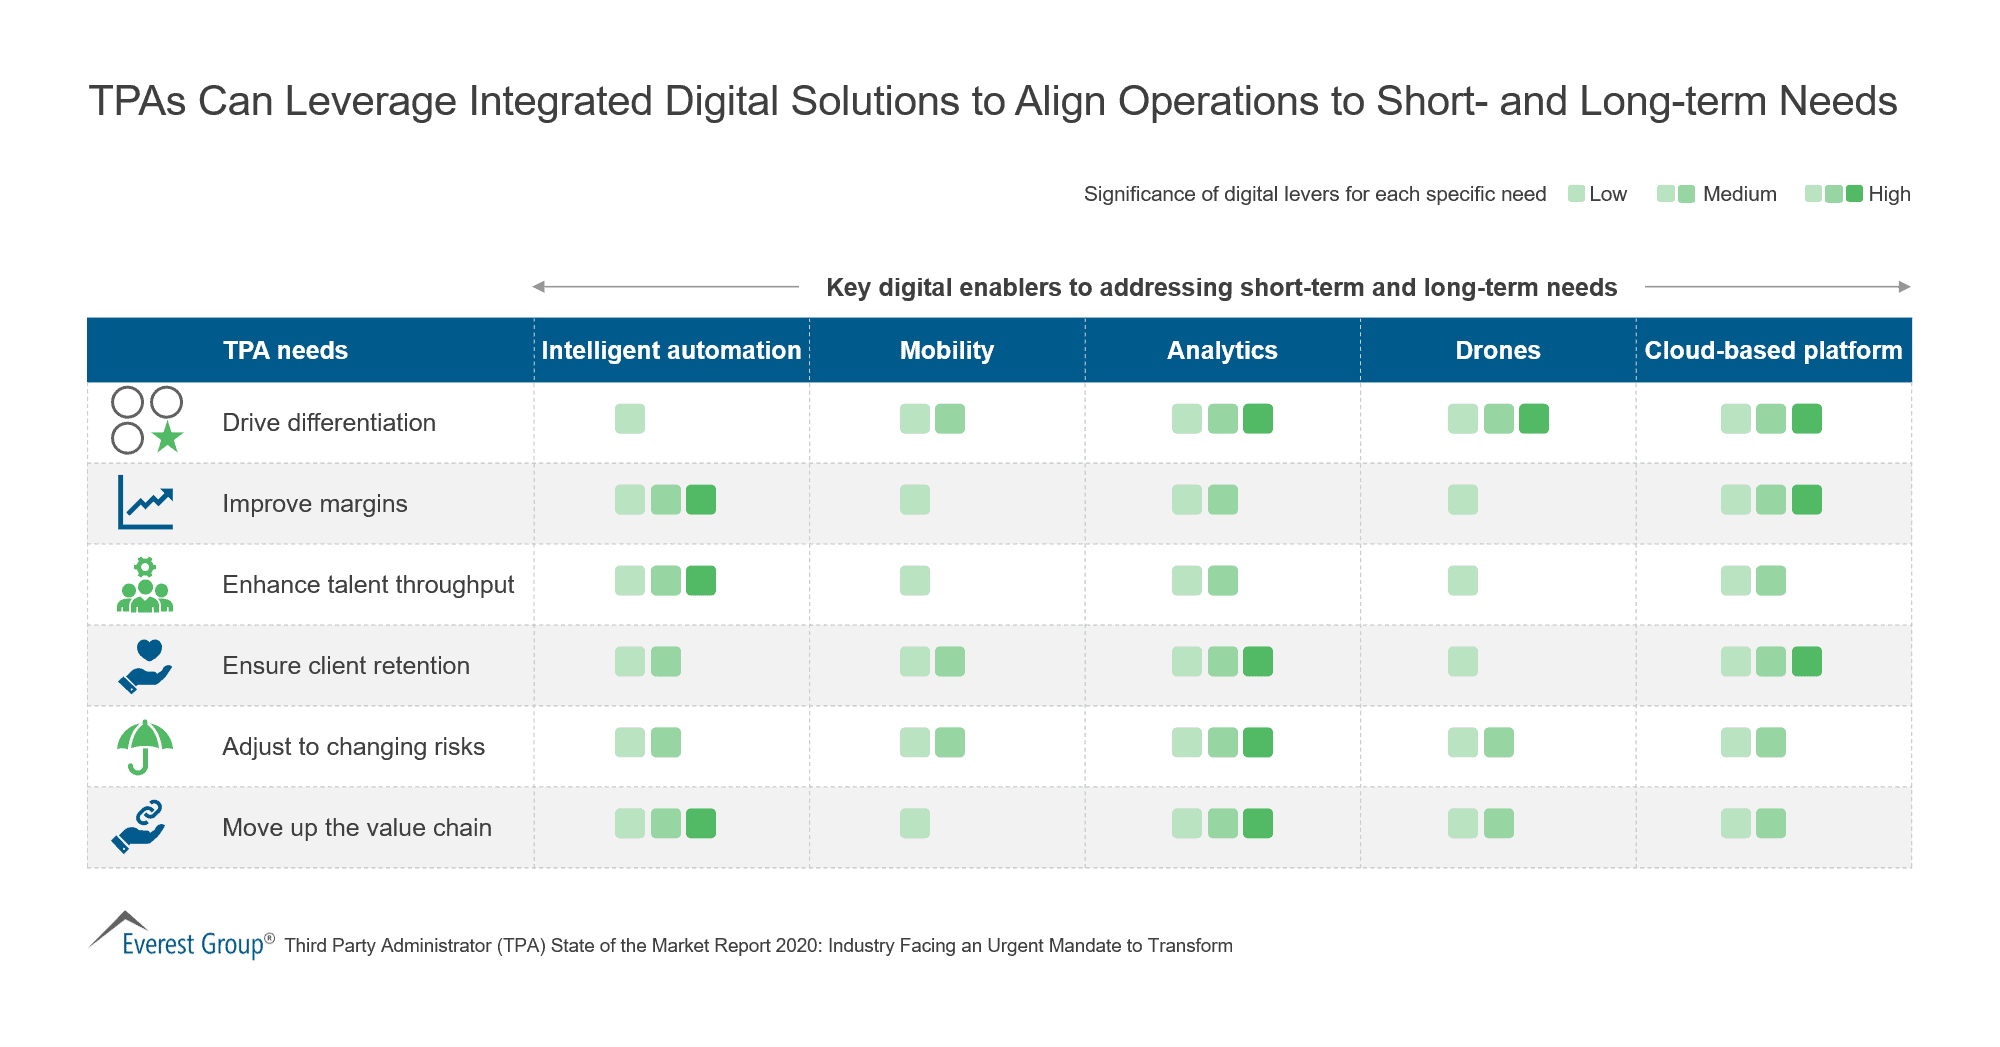 TPAs Can Leverage Integrated Digital Solutions to Align Operations to Short- and Long-term Needs